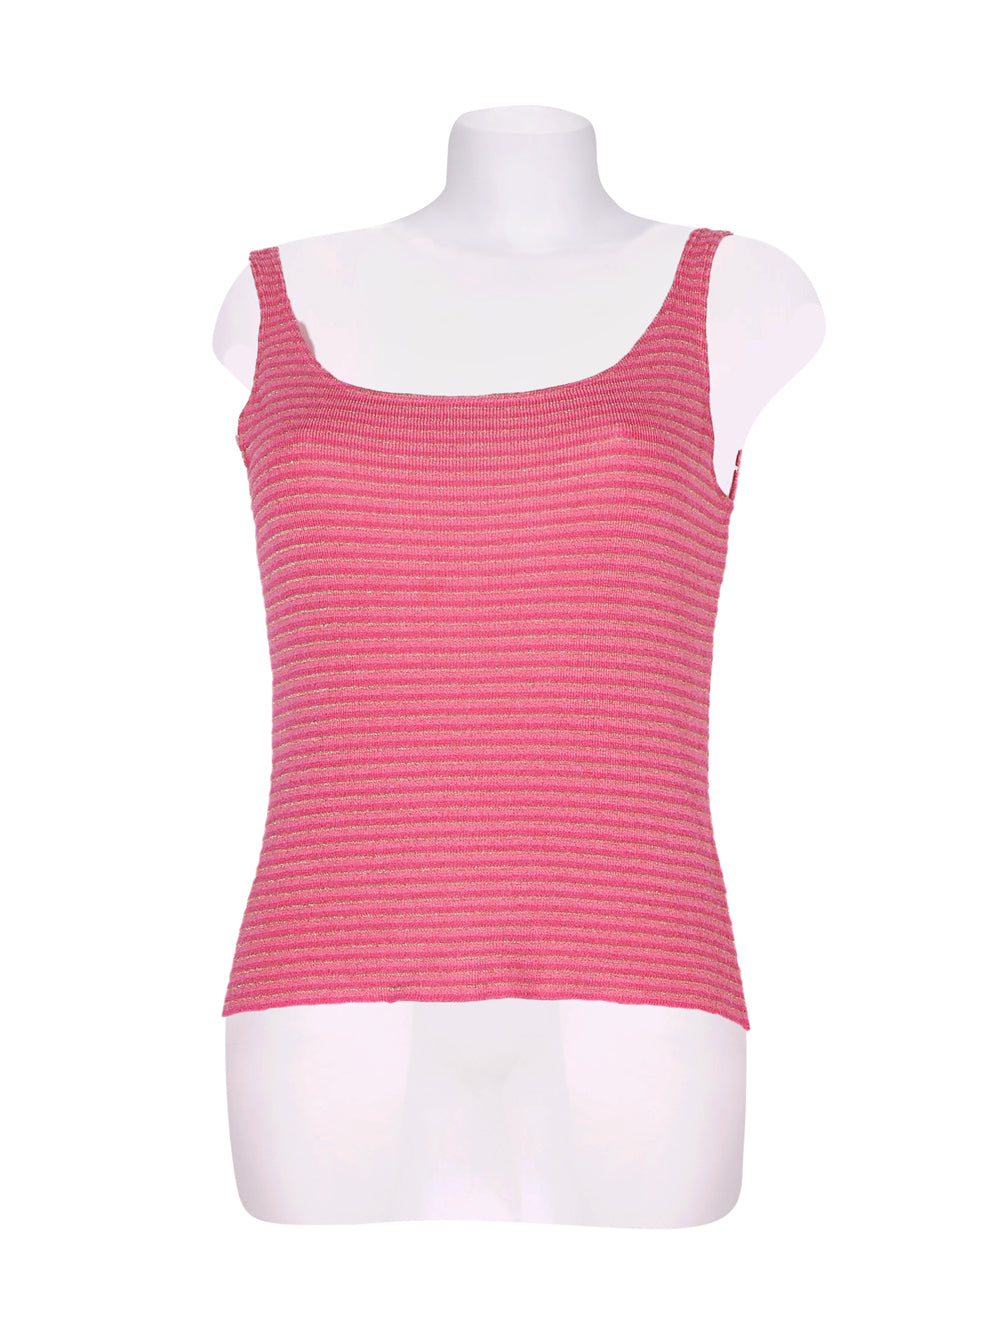 Front photo of Preloved landini Pink Woman's sleeveless top - size 12/L